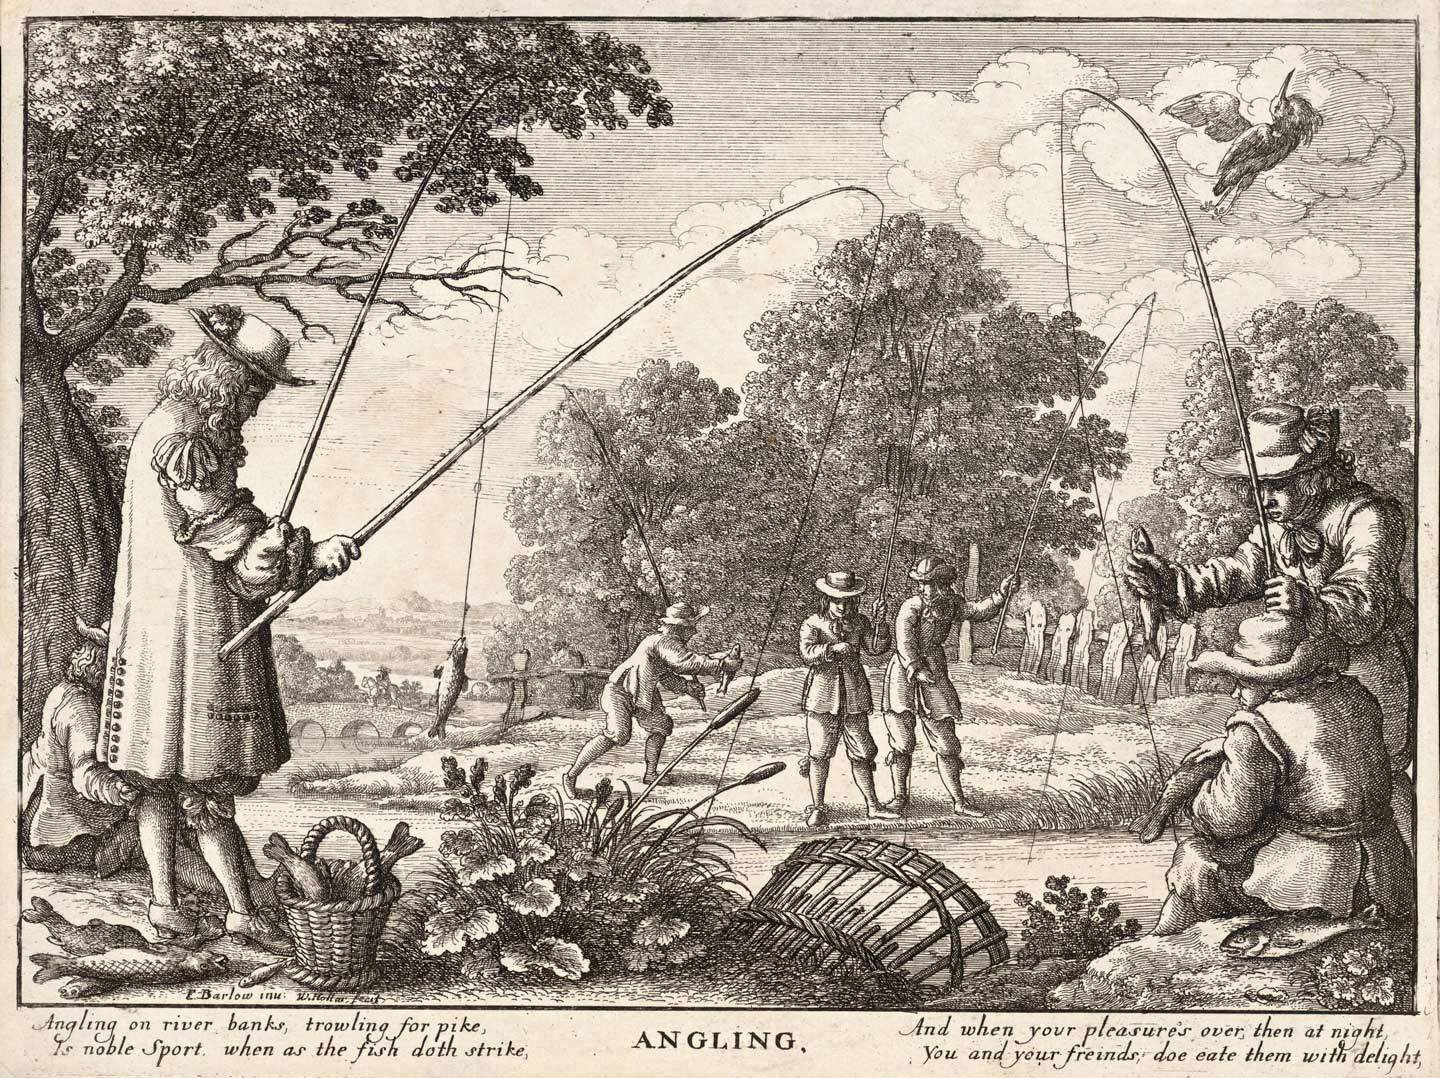 'Angling' was a popular past time in the 1600s and served as the inspiration for Walton's book. (Wikimedia Commons)